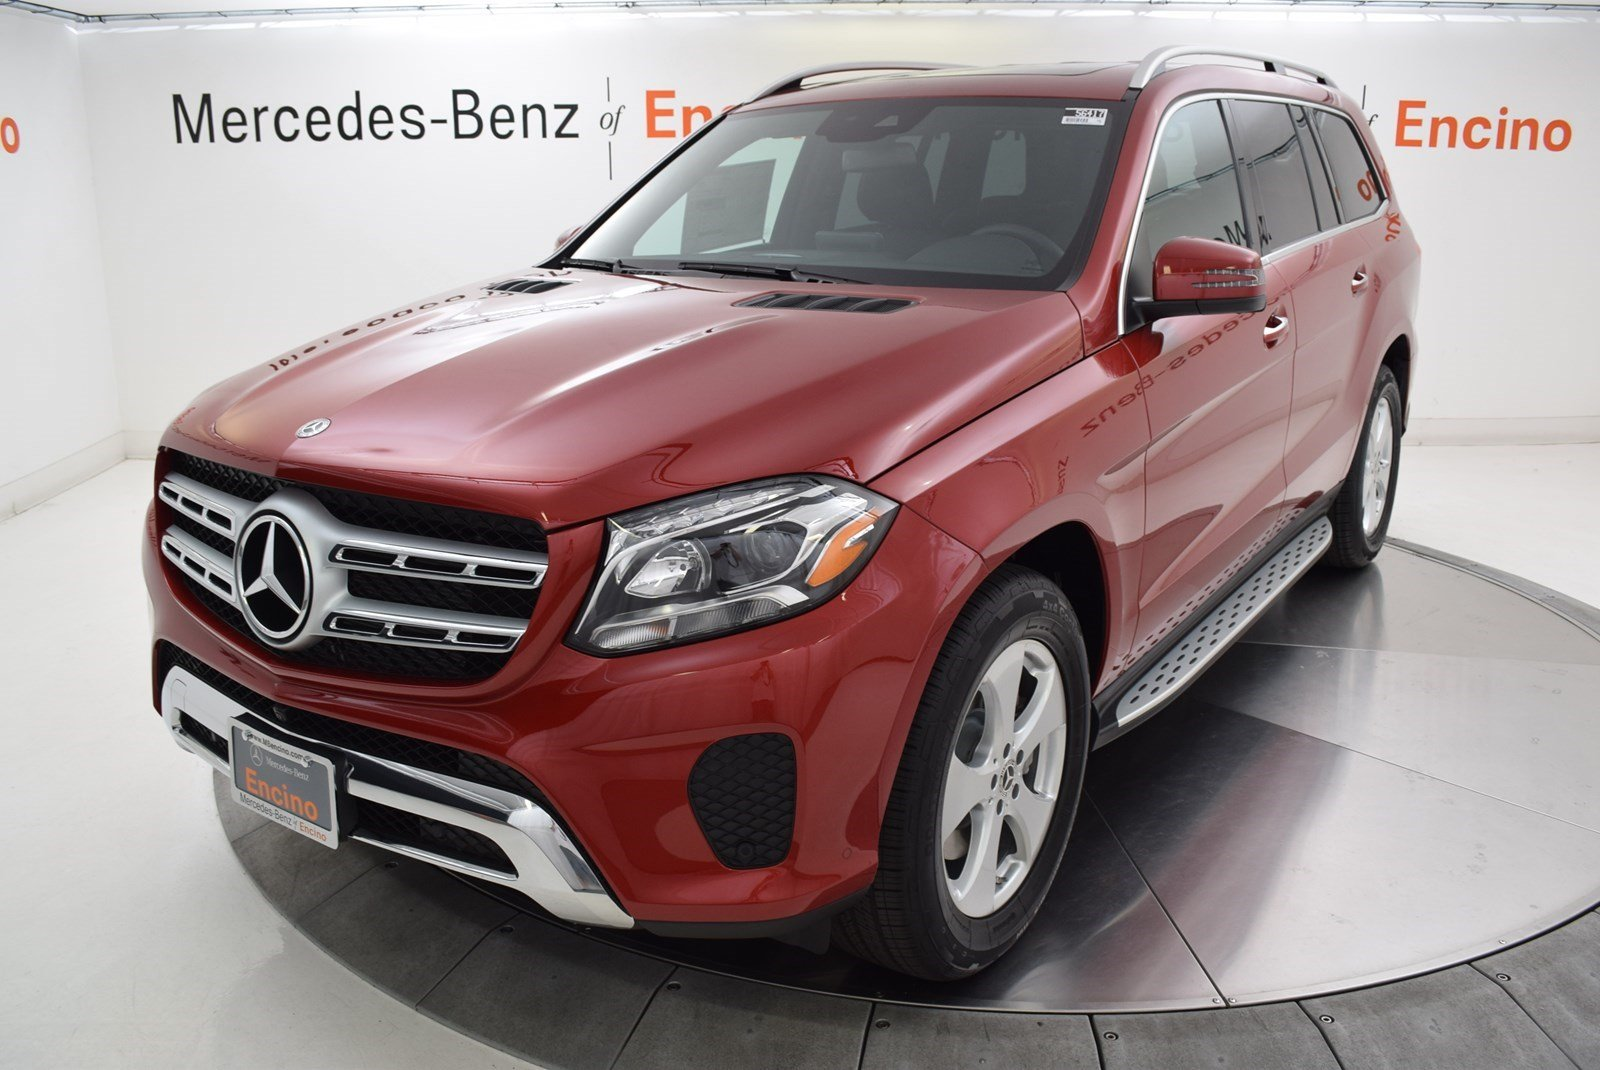 New 2017 mercedes benz gls gls 450 suv in encino 56417 for 2017 mercedes benz gls 450